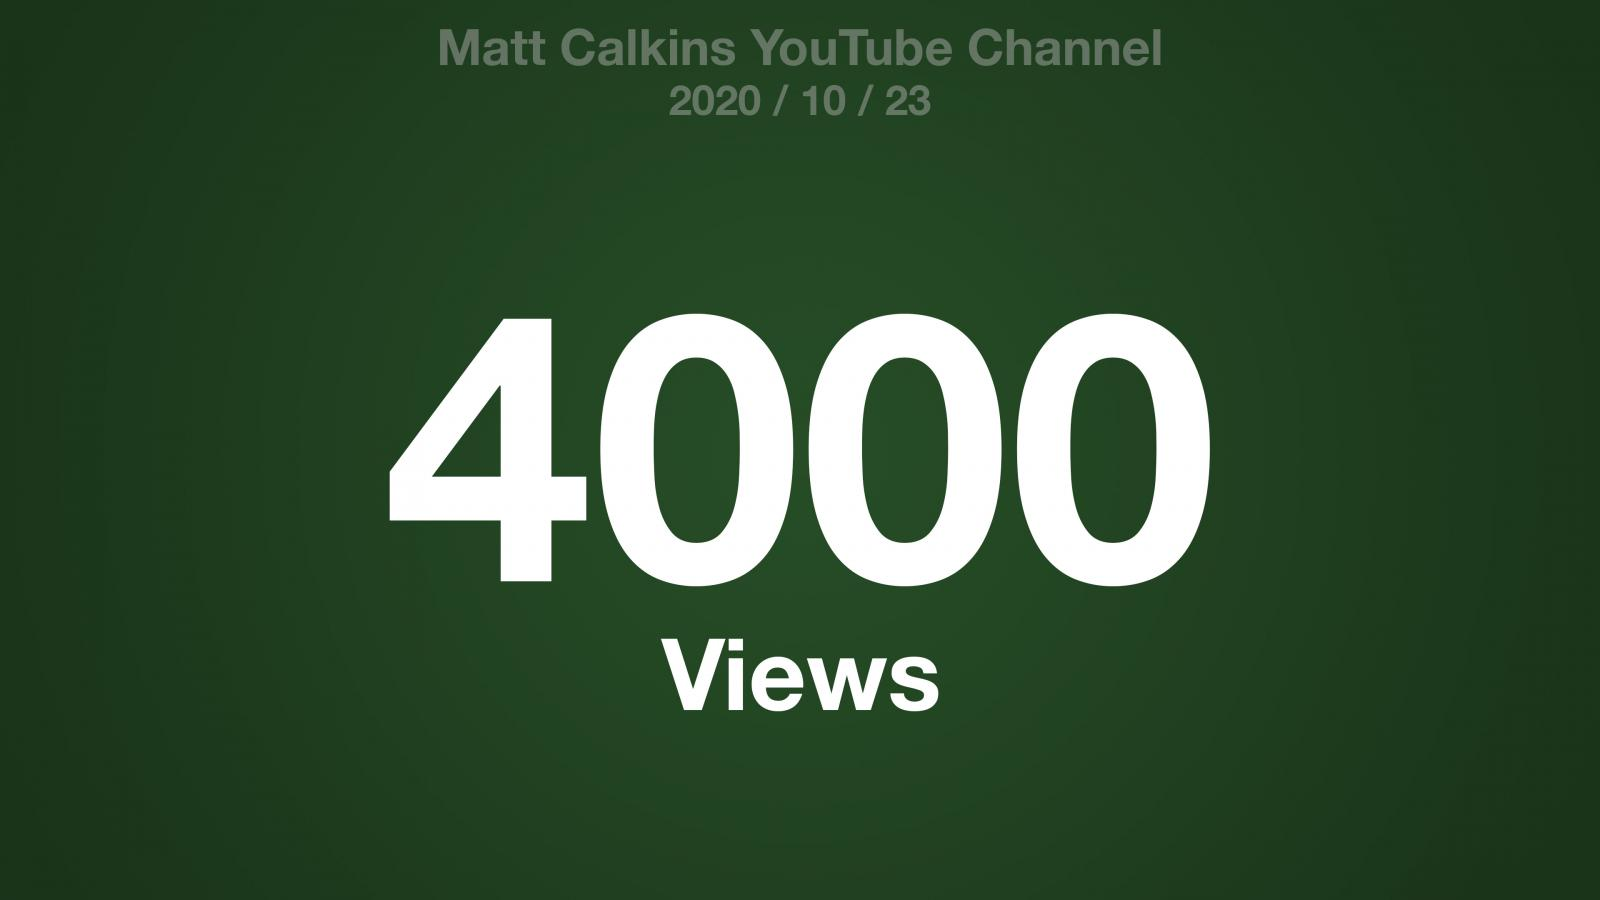 A green radial gradient with the text: Matt Calkins YouTube Channel 2020/10/23 4000 Views